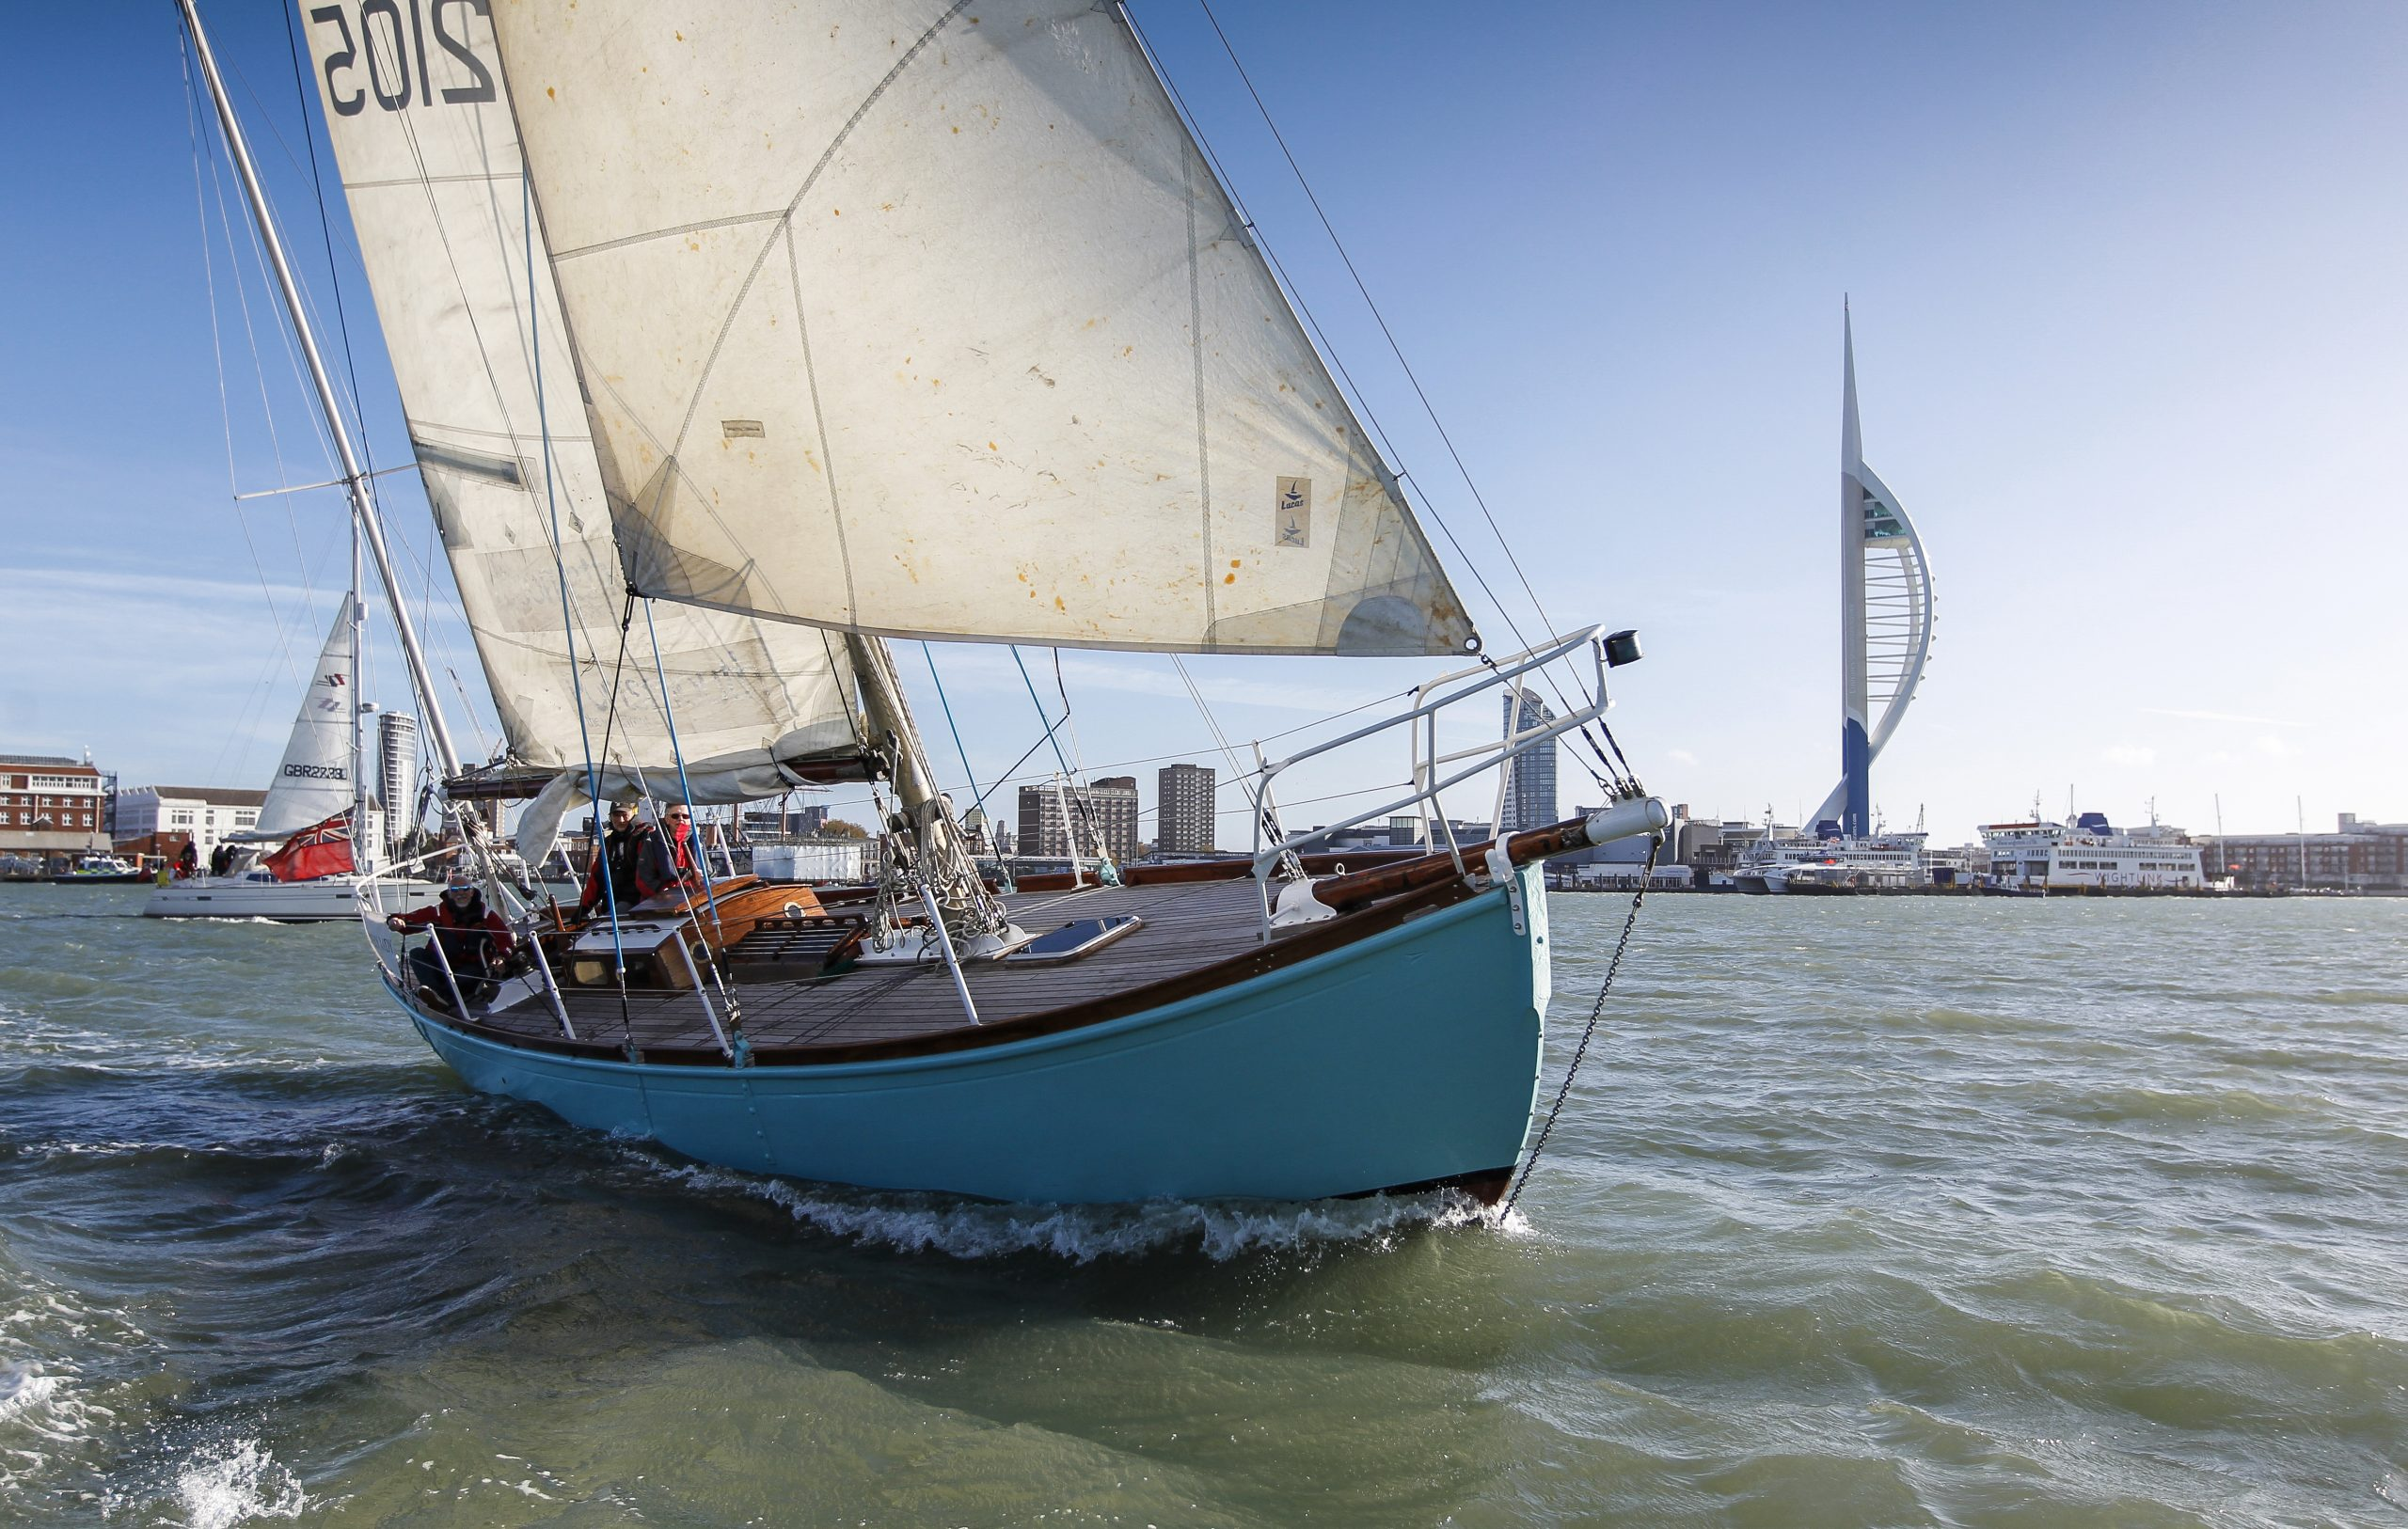 Lively Lady, the ketch Sir Alec Rose sailed around the world